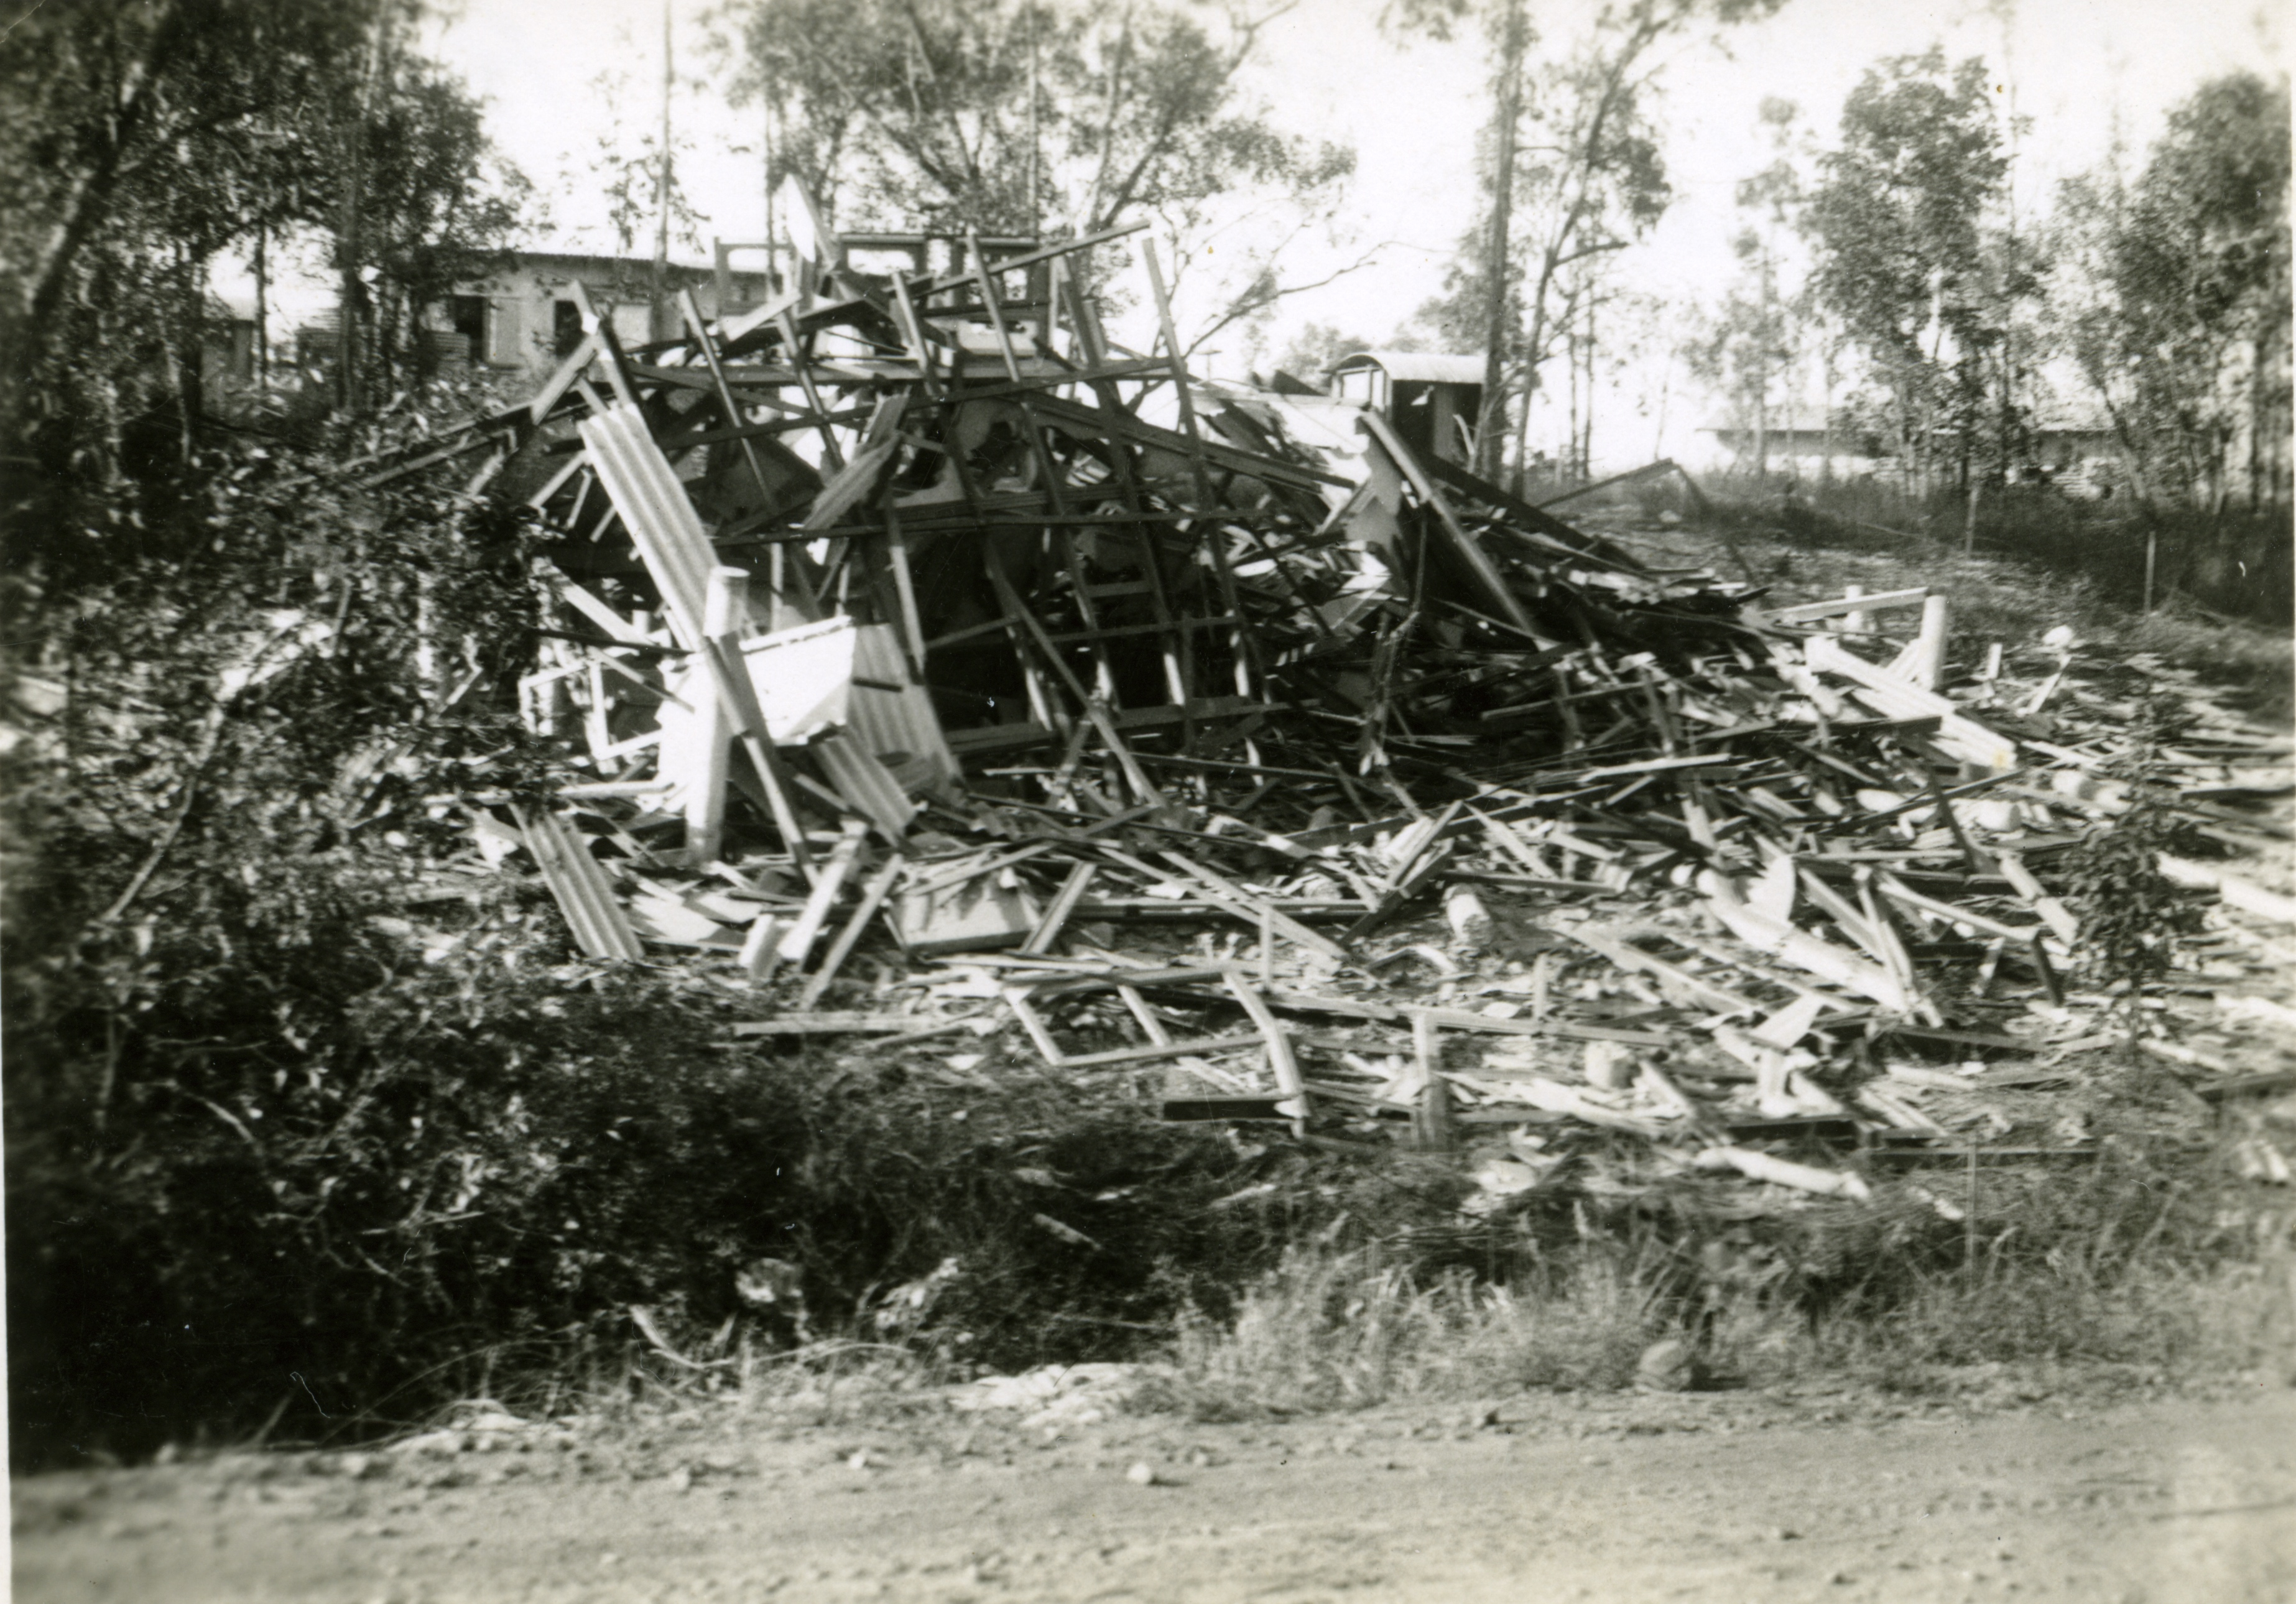 Destroyed house with wooden building materials scattered on the ground.